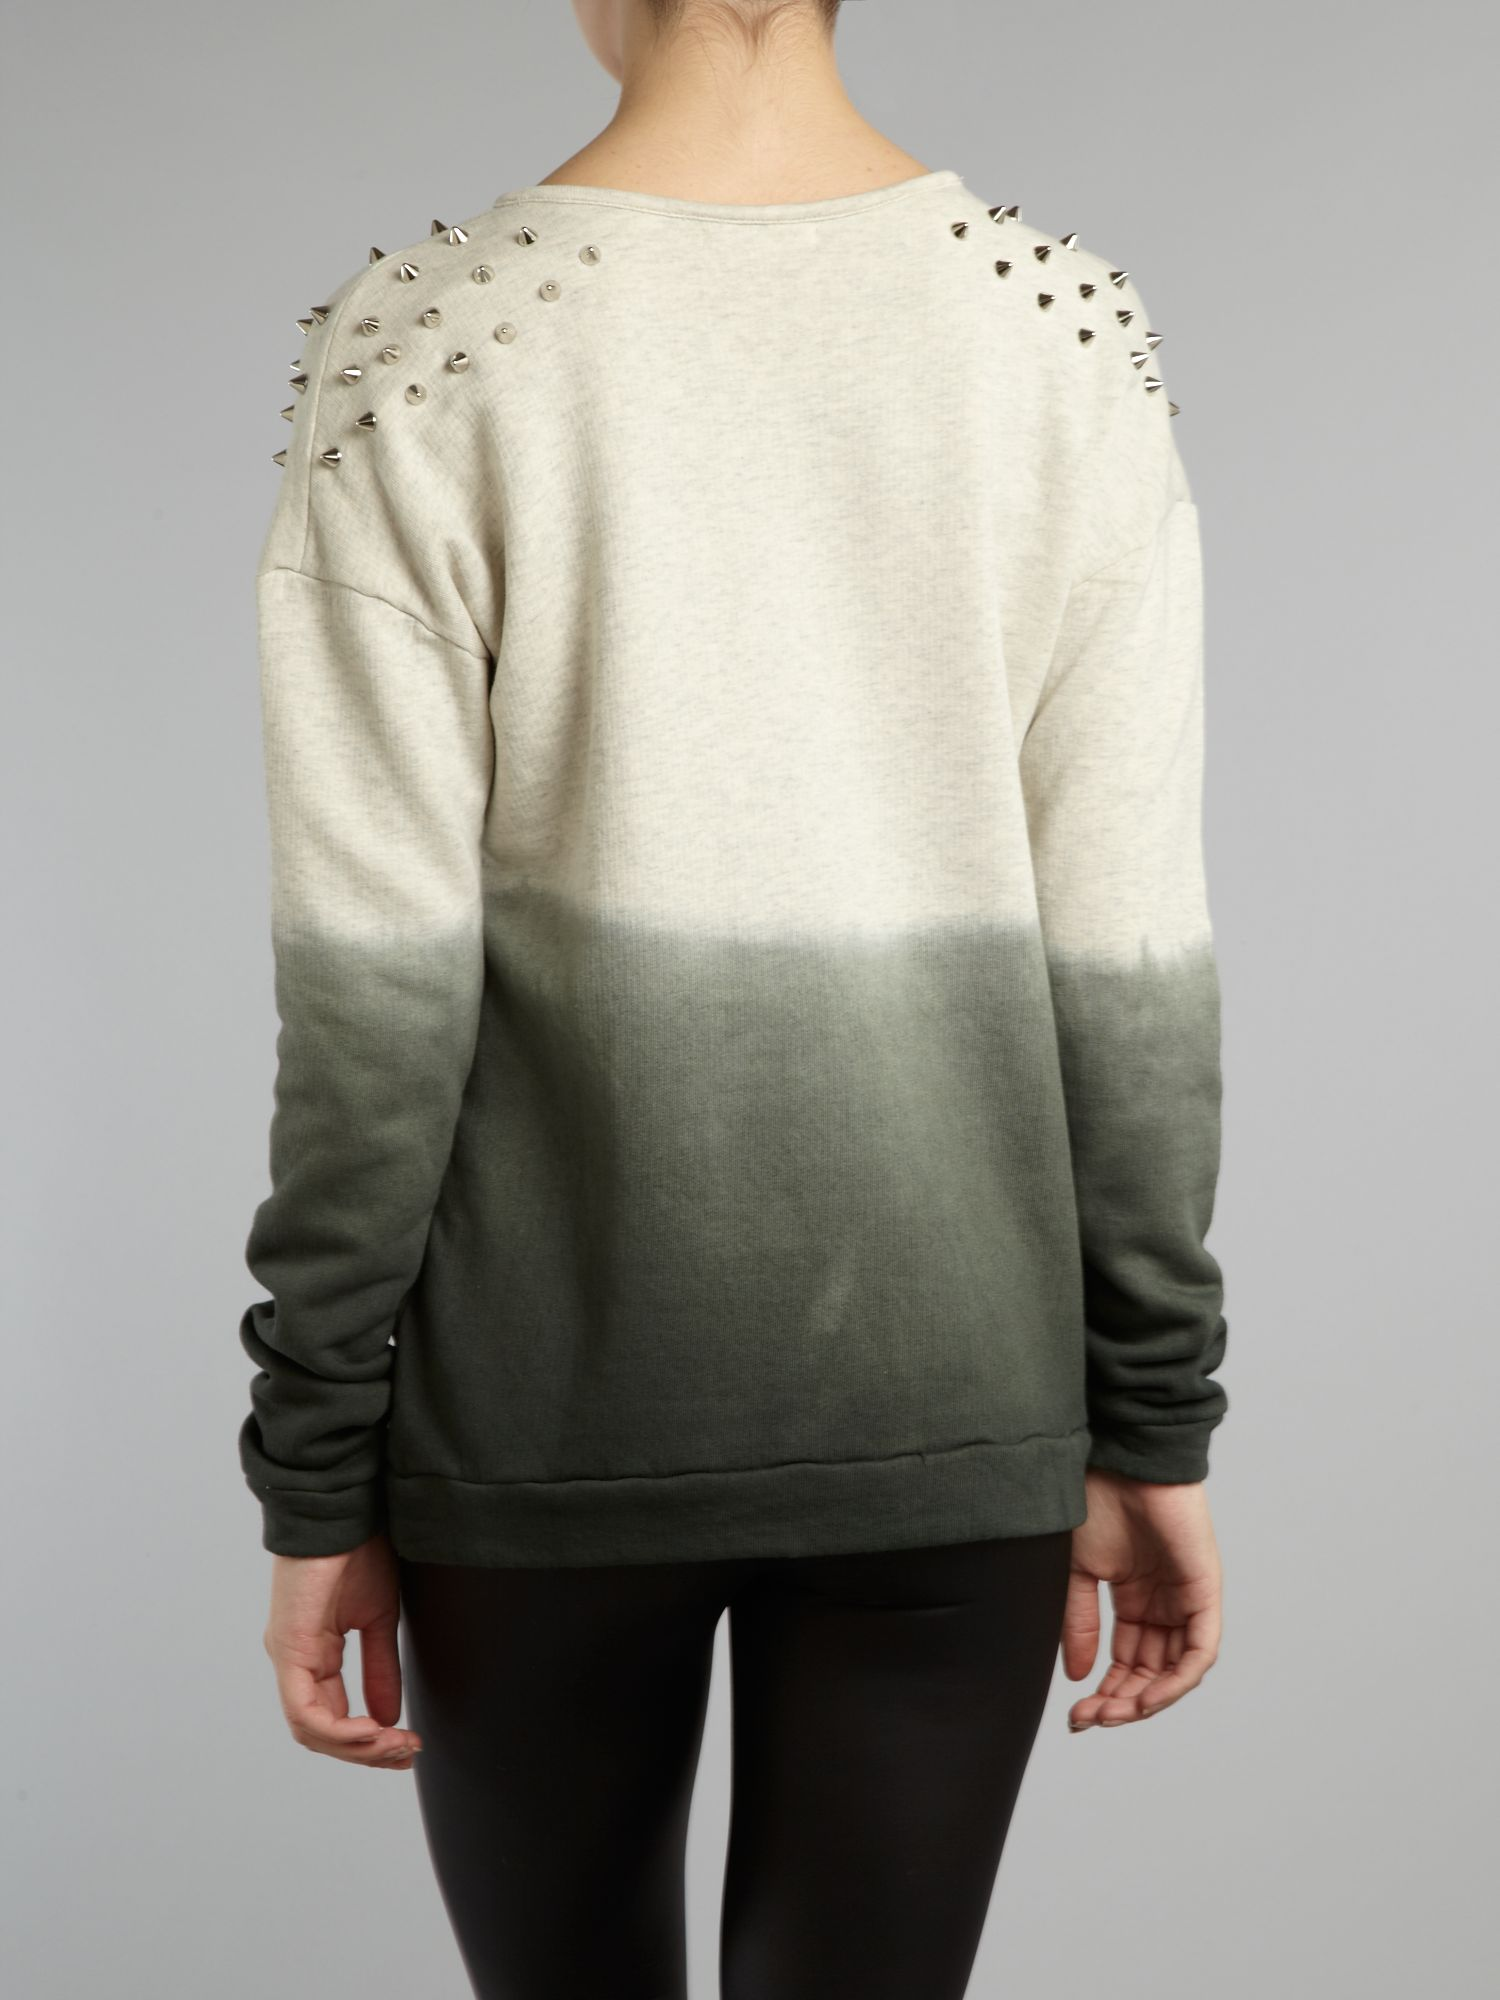 Studded ombre jumper